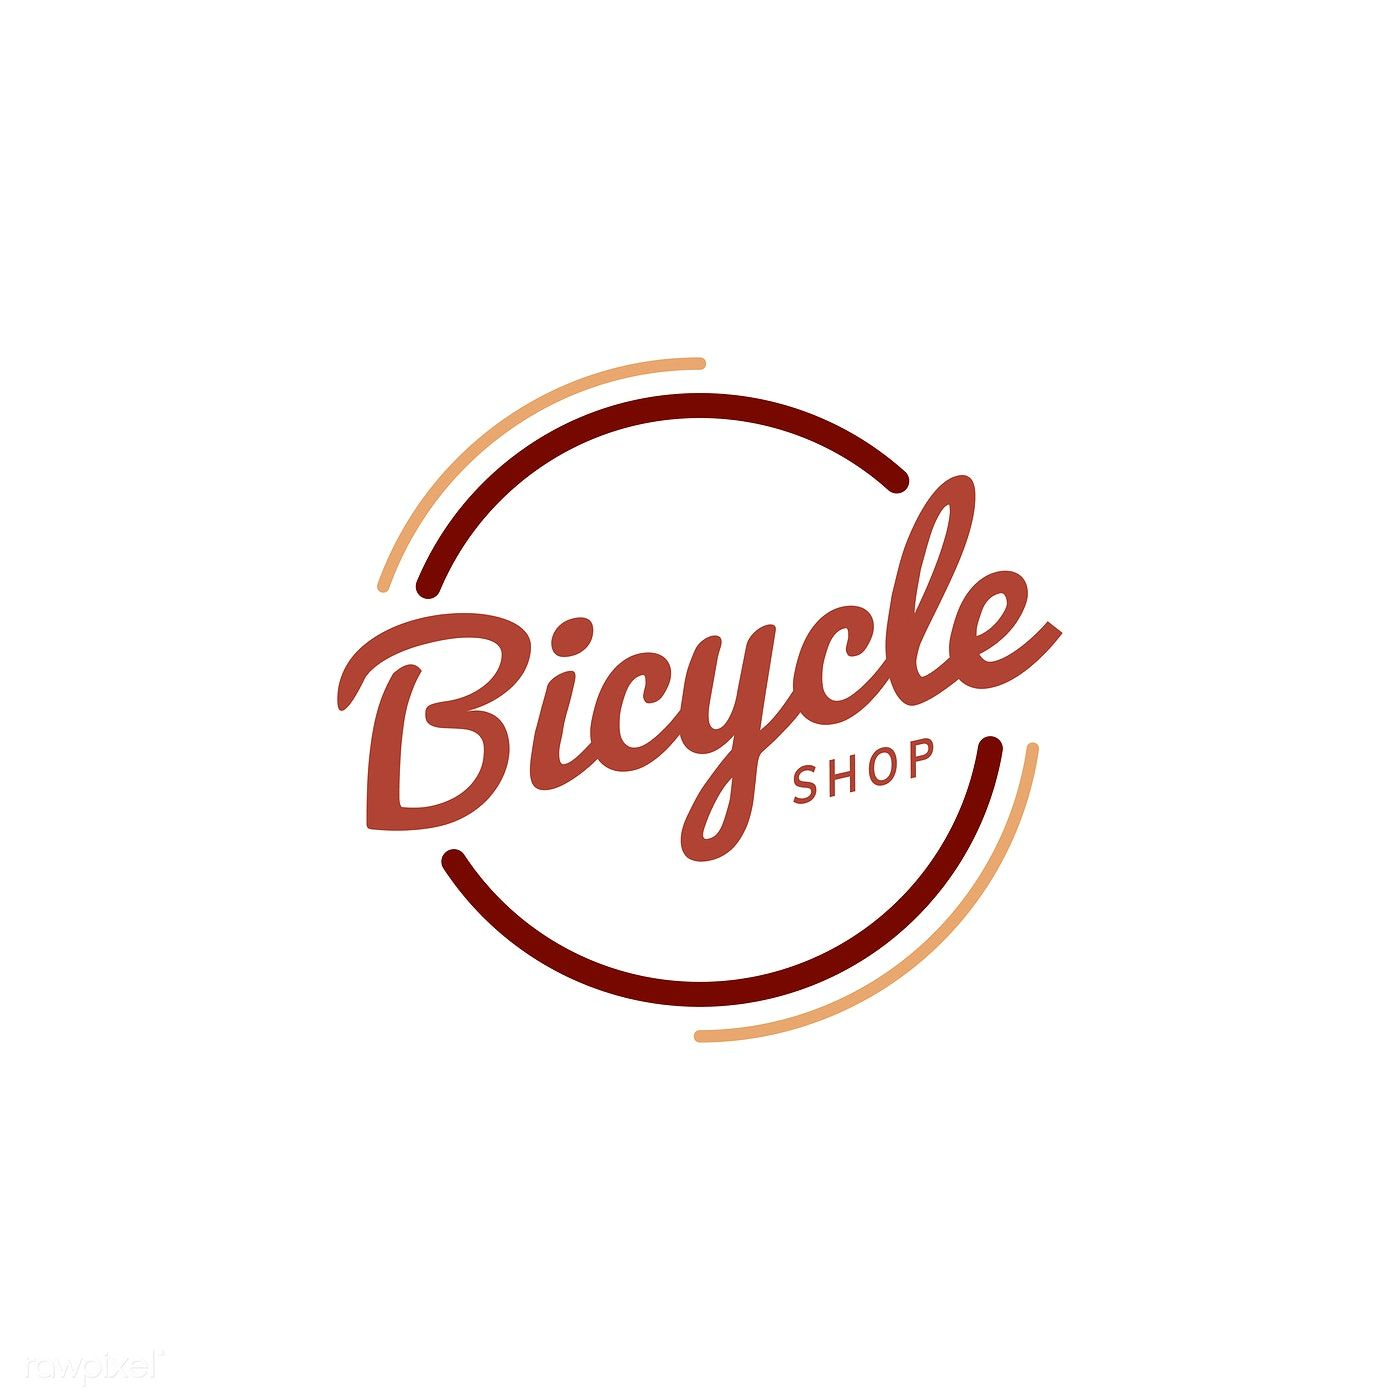 Bicycle shop logo design vector free image by rawpixel